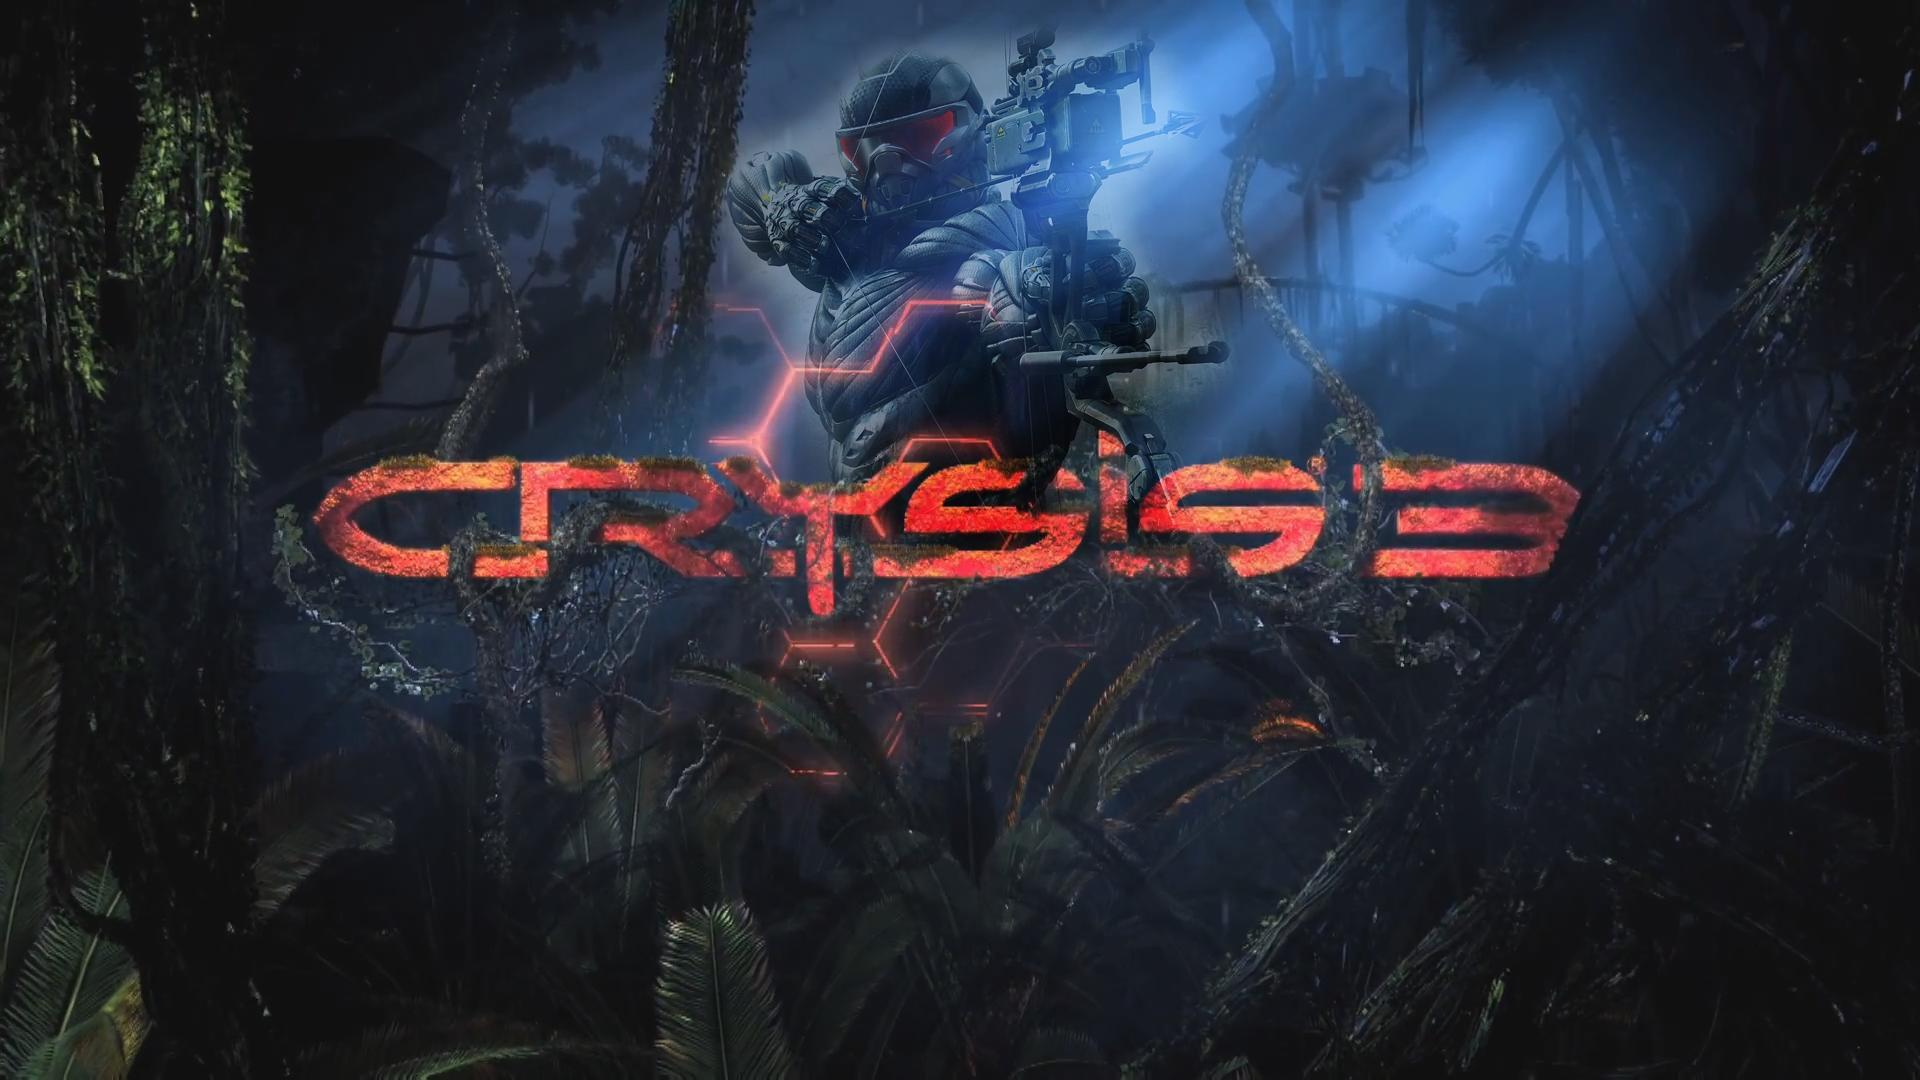 Wallpapers For > Crysis 3 Wallpapers 1920x1080 Hd